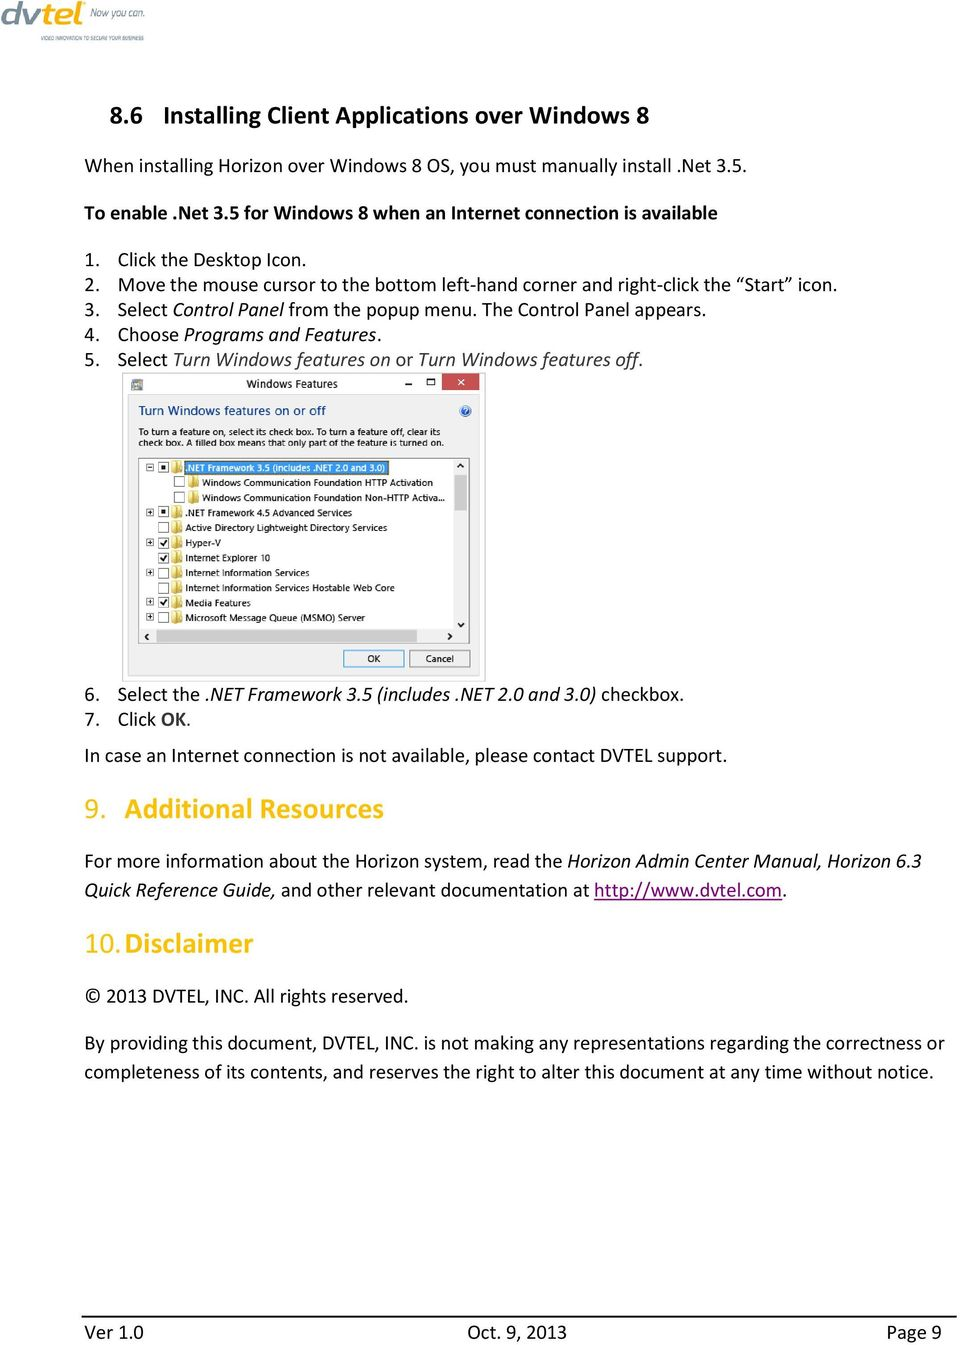 Horizon Client Workstation Specifications and Deployment - PDF